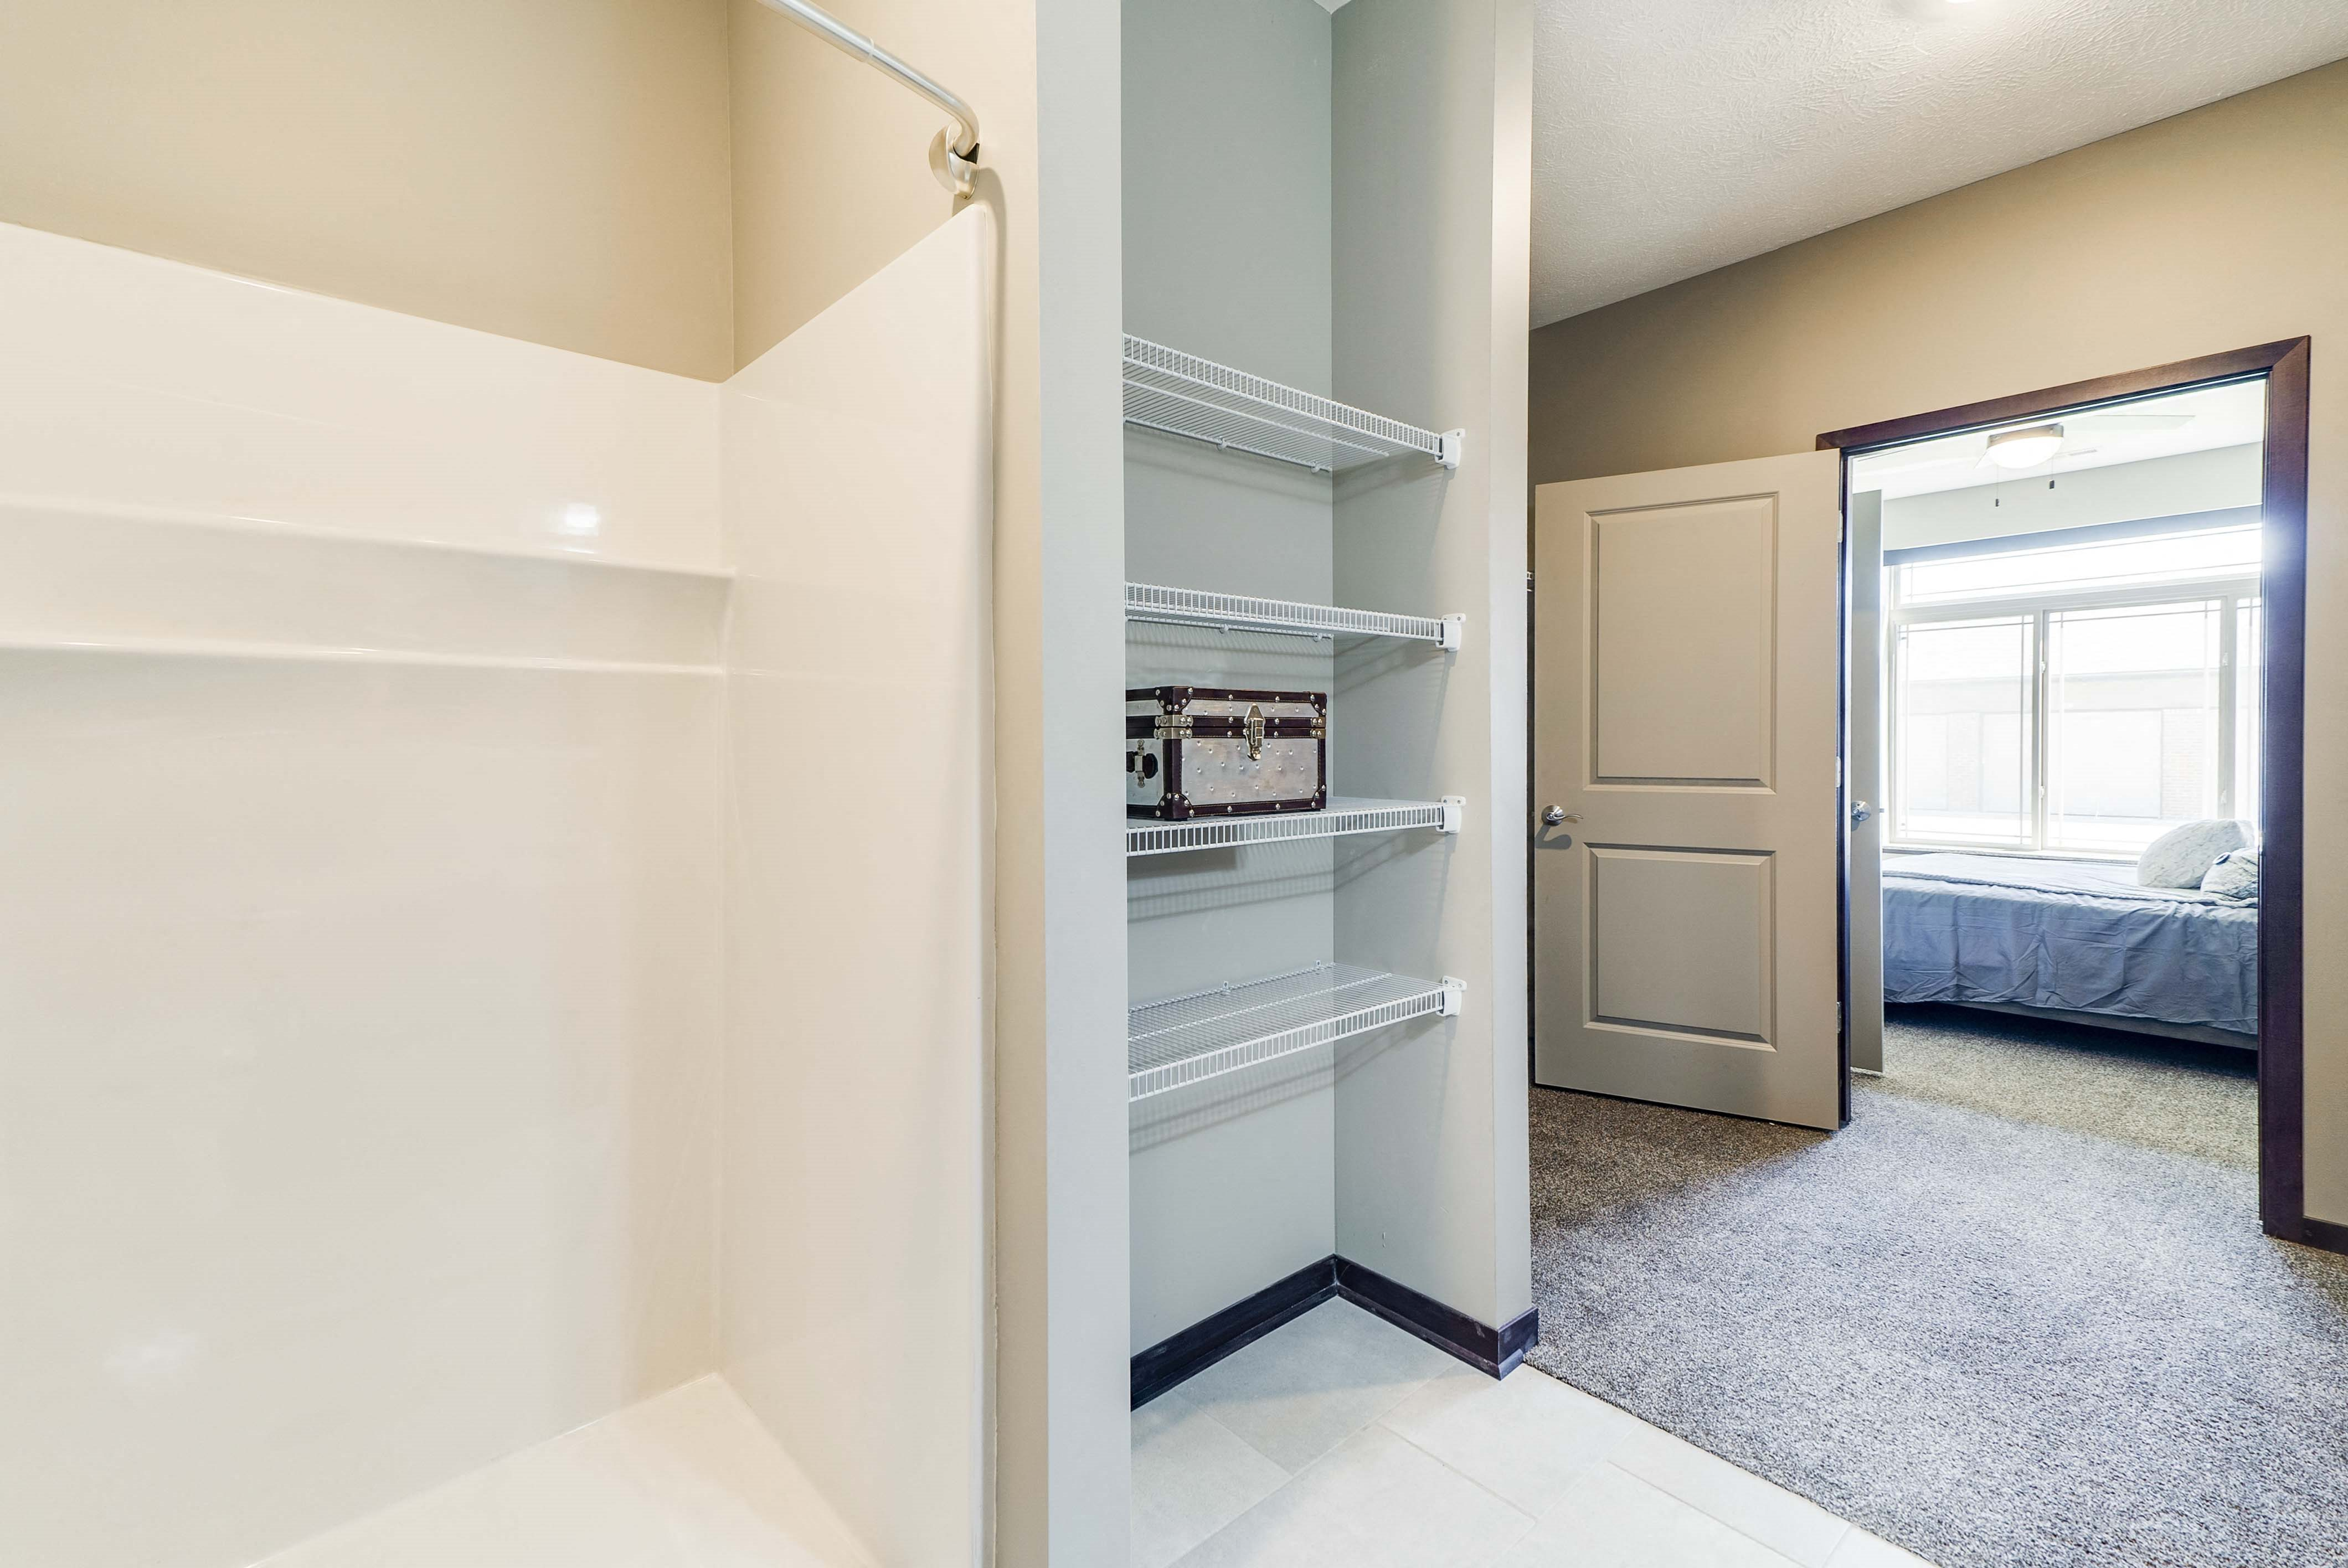 Spacious walk in closet and bathroom with a shower and granite countertops in 2 bedroom apartment for rent at 360 at Jordan West best new apartments West Des Moines IA 50266